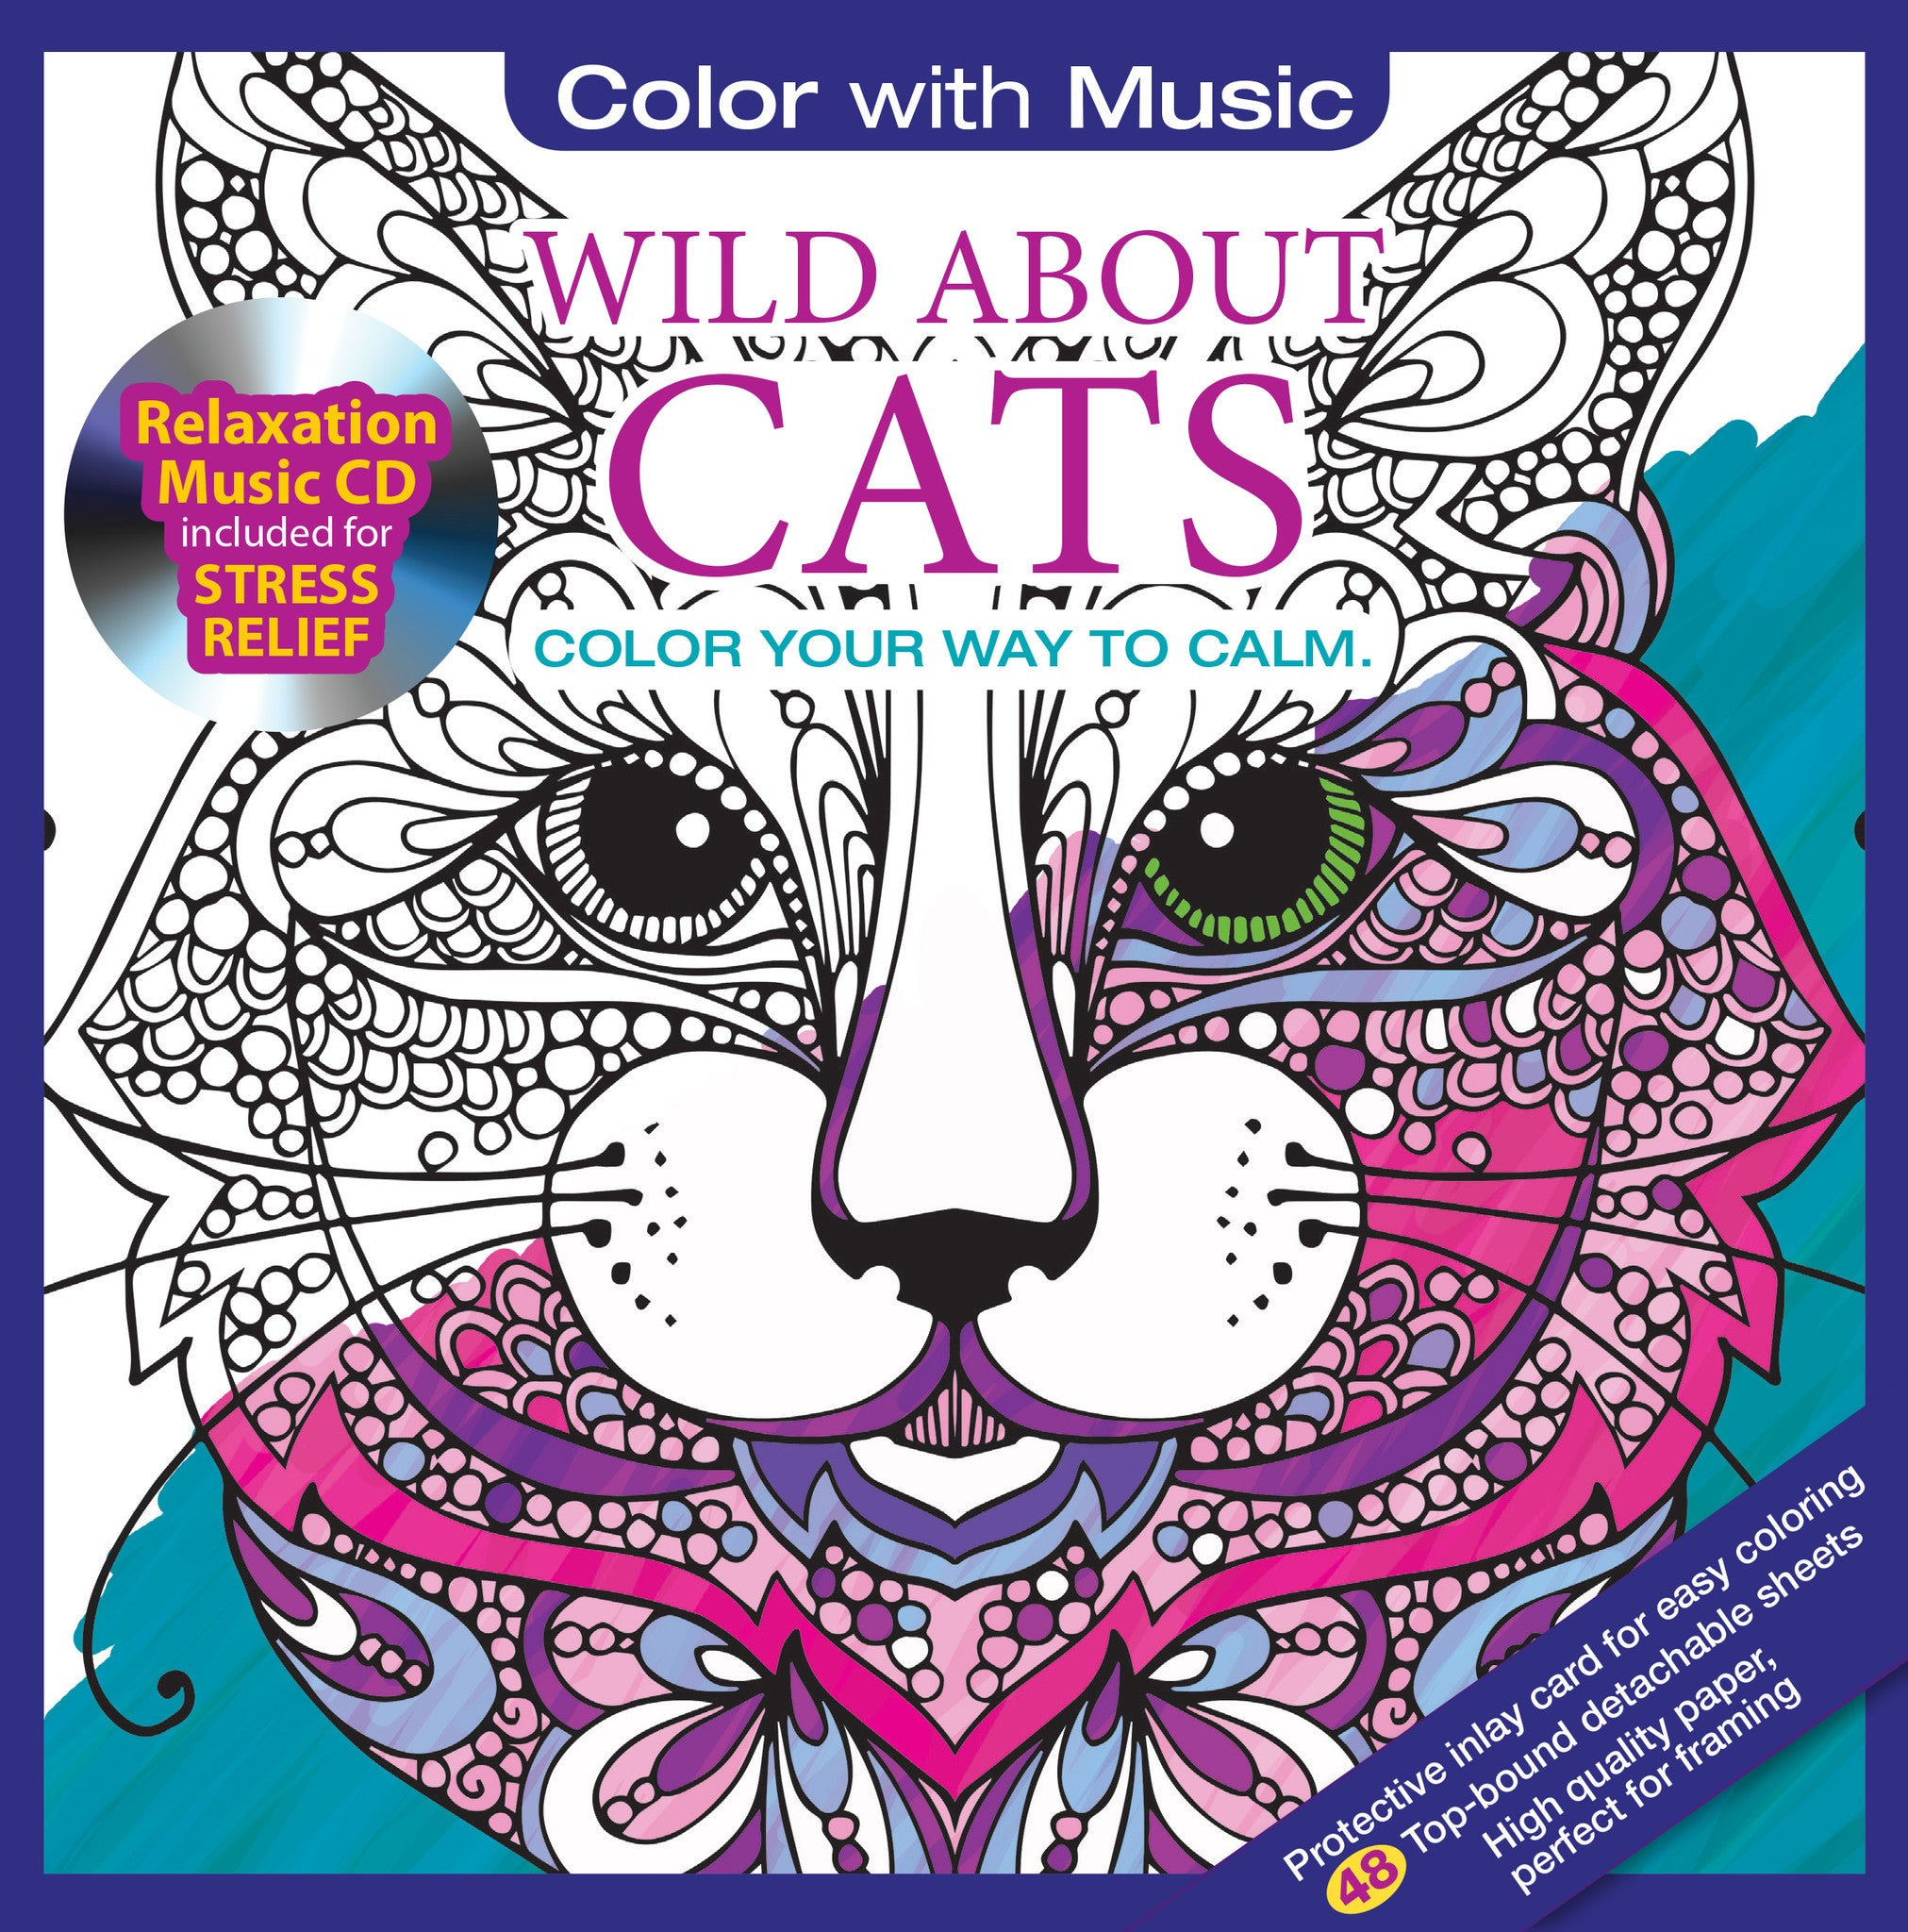 Coloring Book Album Cover : Wild About Cats Adult Coloring Book With Relaxation CD Color With Music